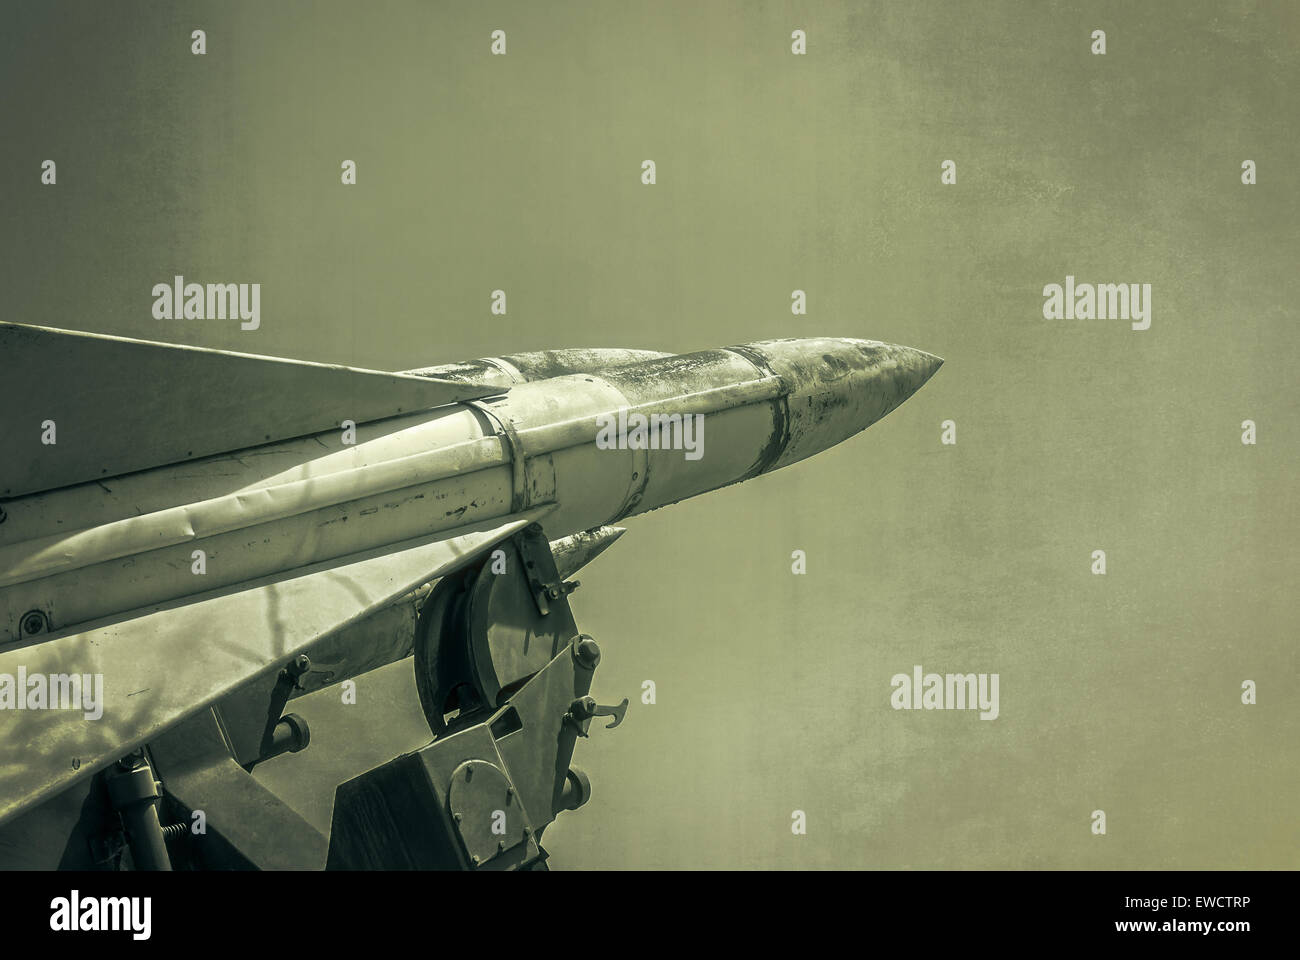 Old russian antiaircraft defense rocket launcher missiles. Grunge Army Missile.  Photo textured in old color image - Stock Image